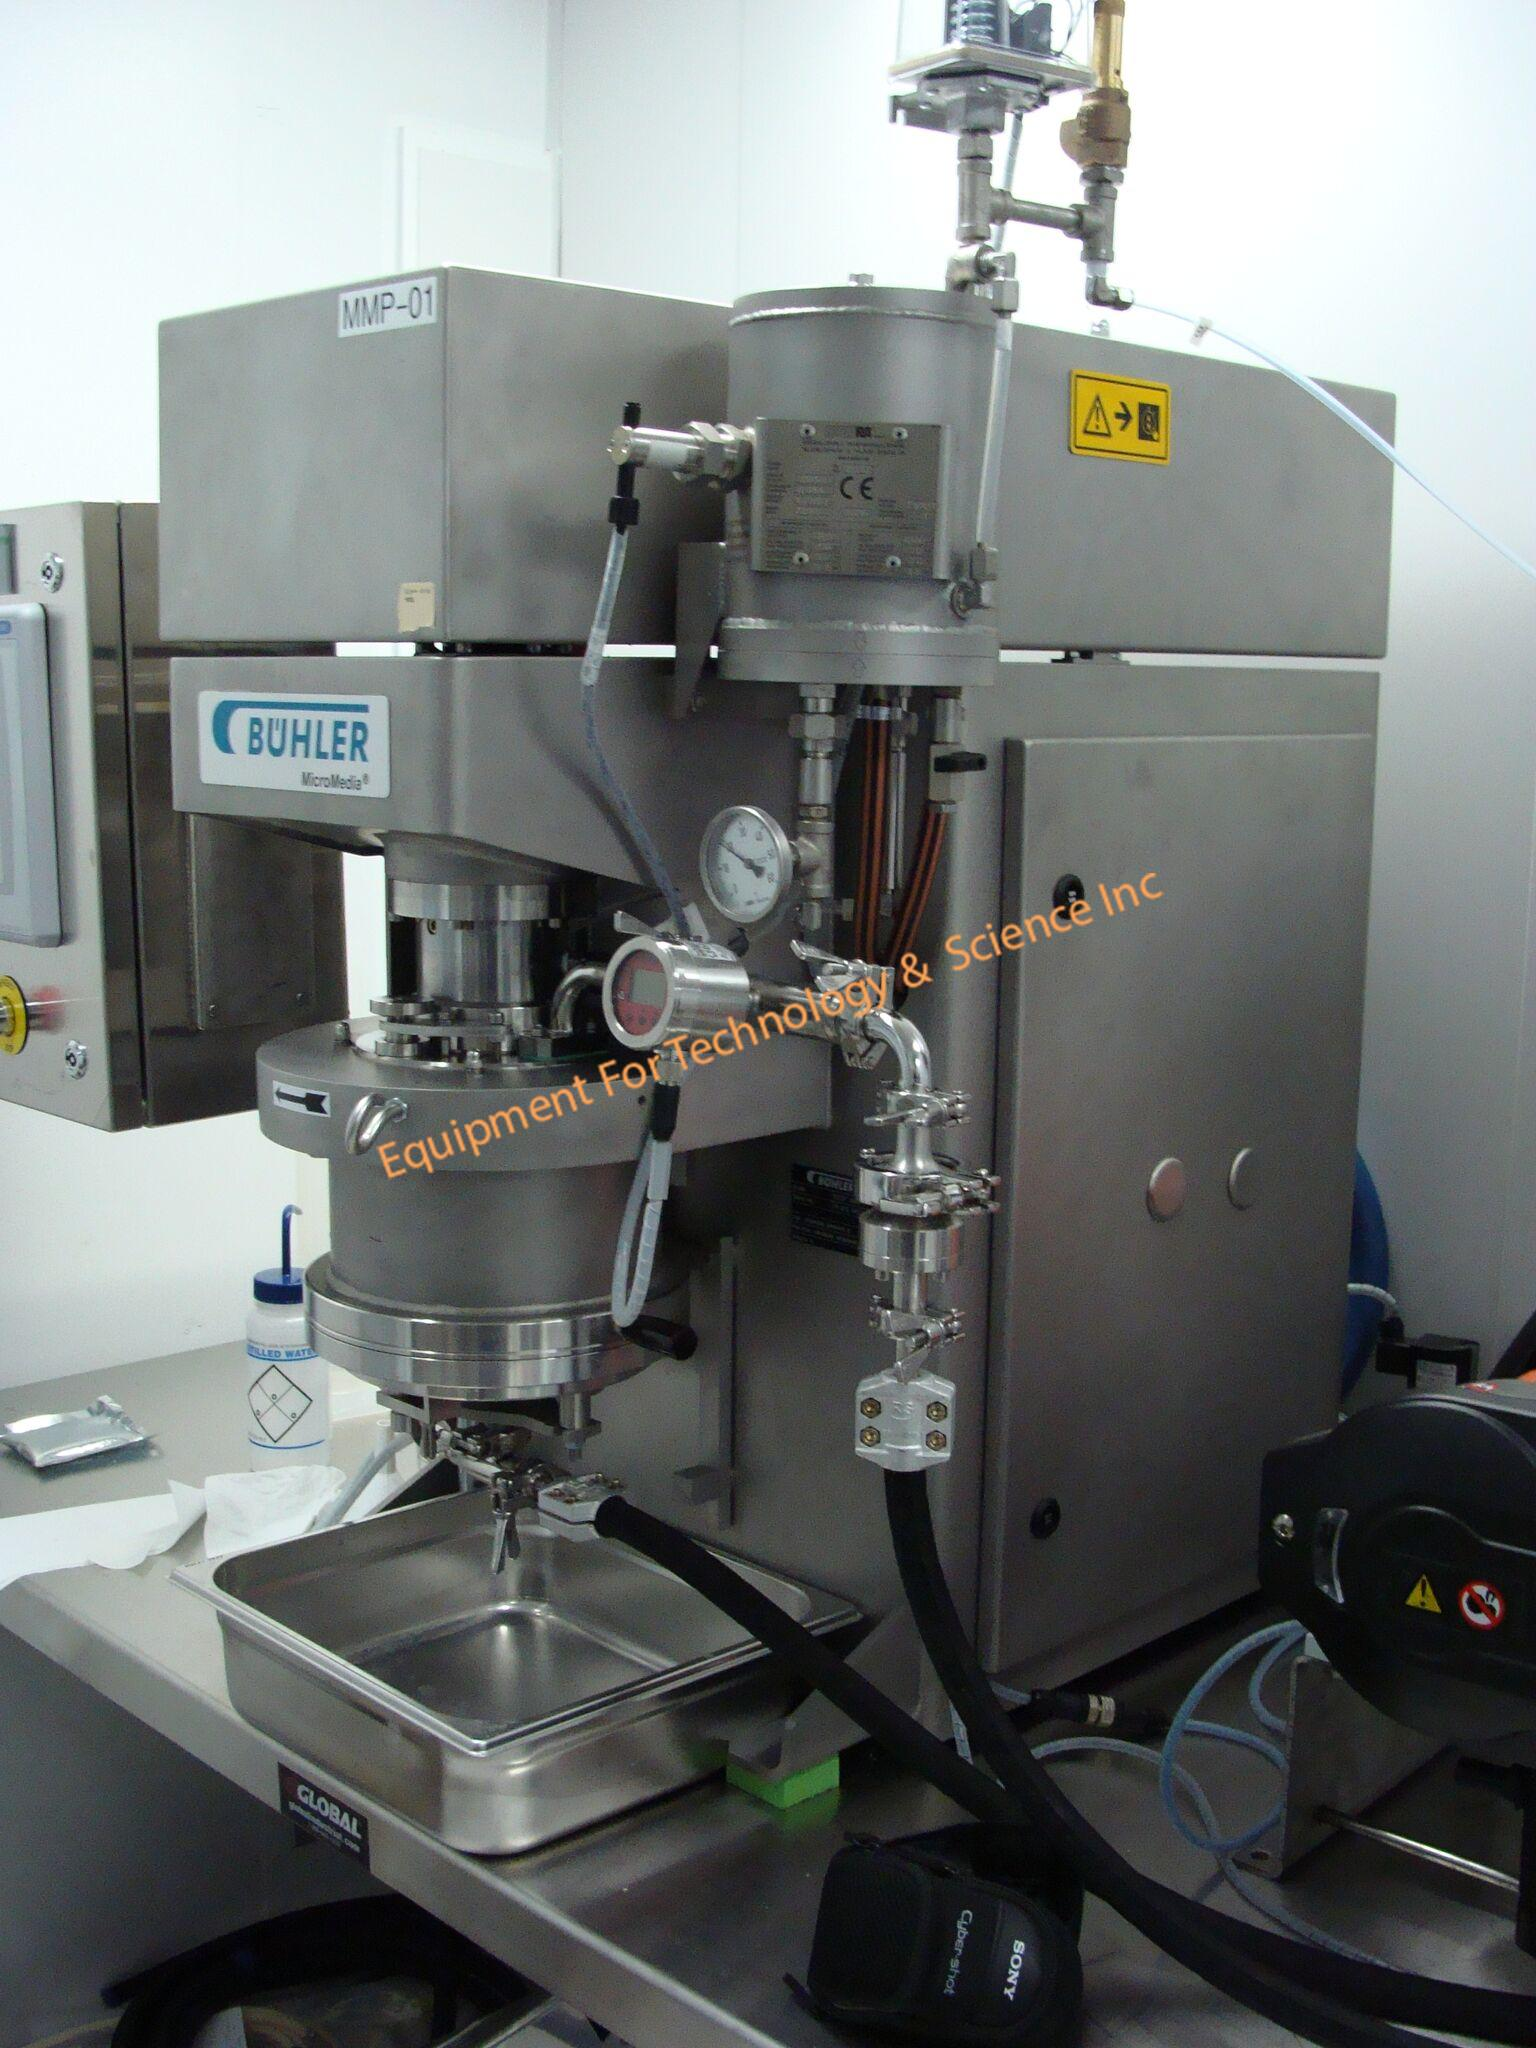 Buhler MM-P1 pilot plant bead mill with SSIC rotor and stator